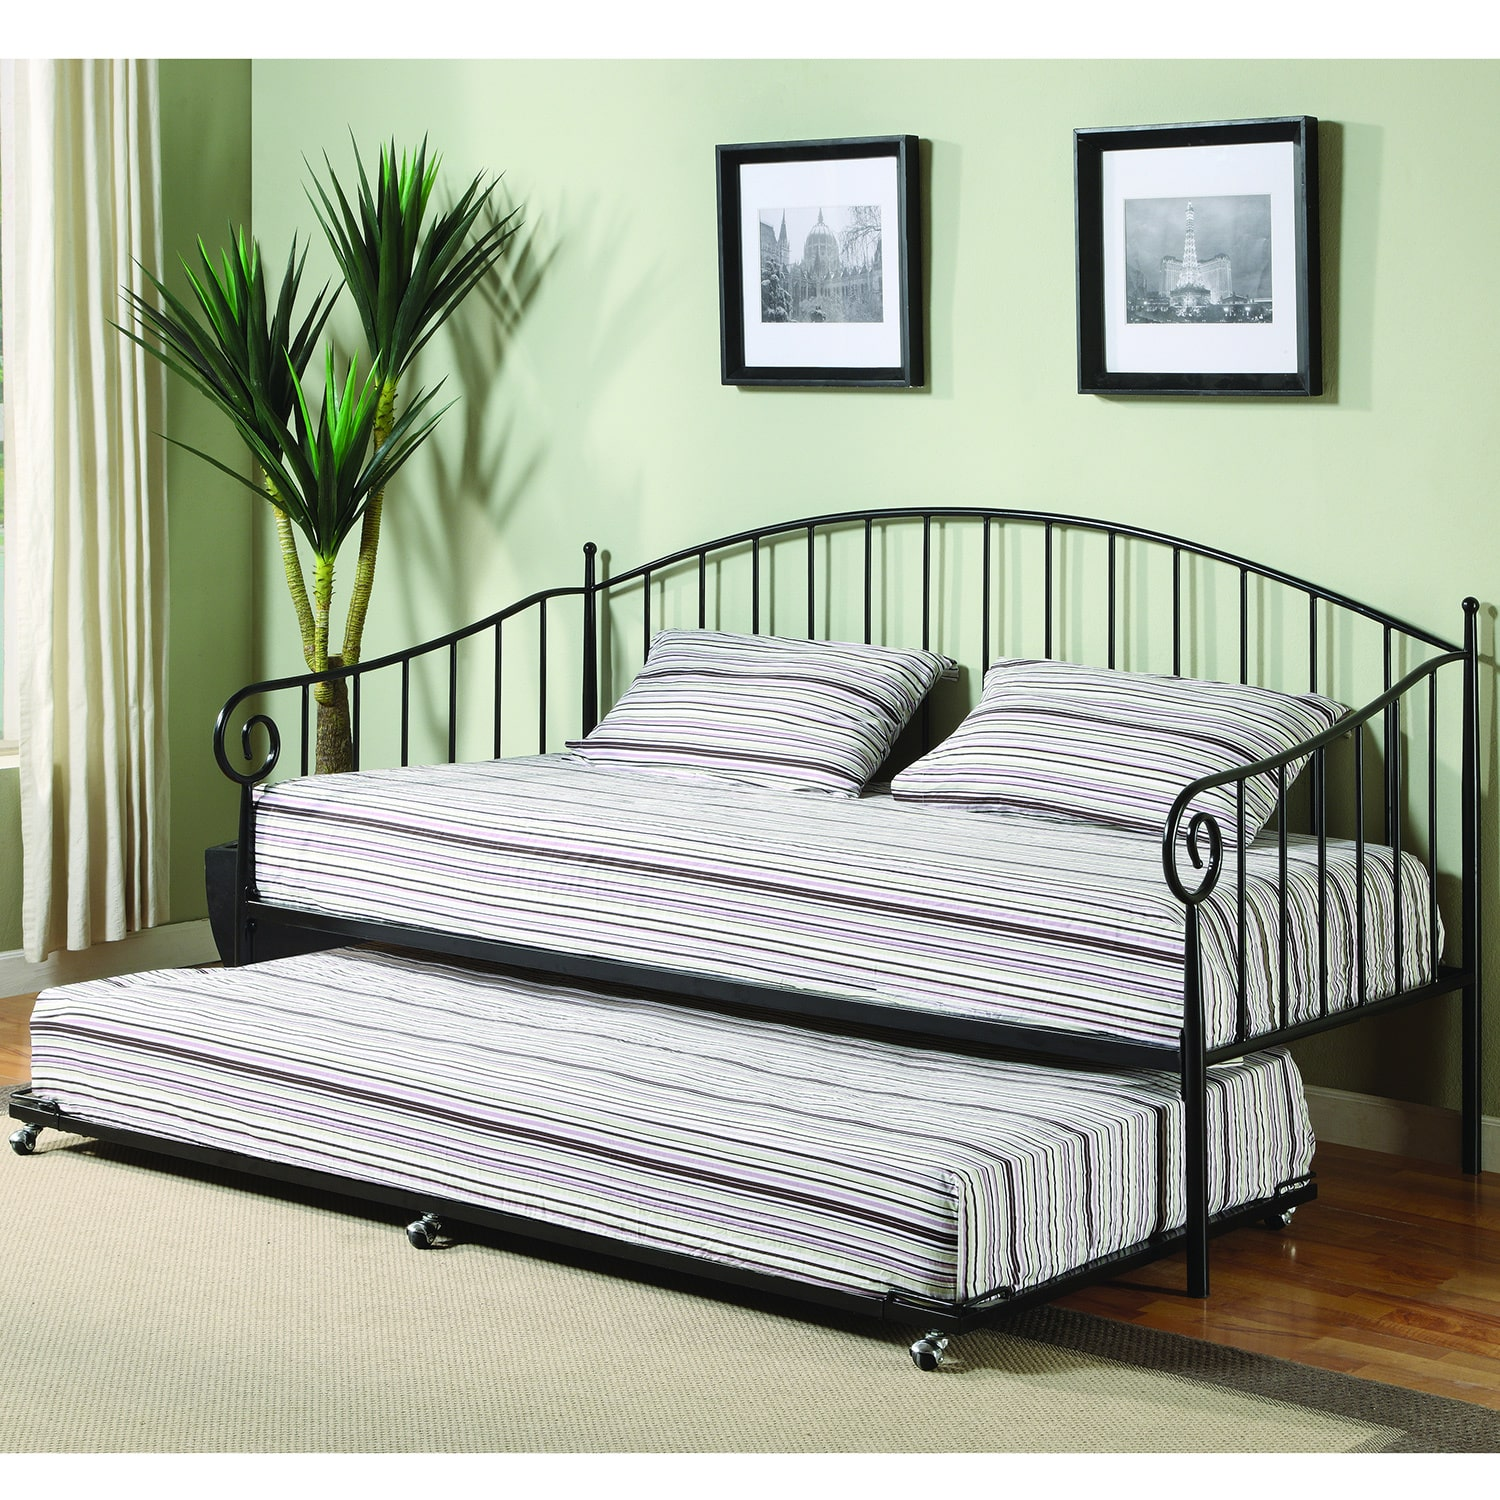 K and B Furniture Co Inc K&B BT01 Black Finish Day Bed